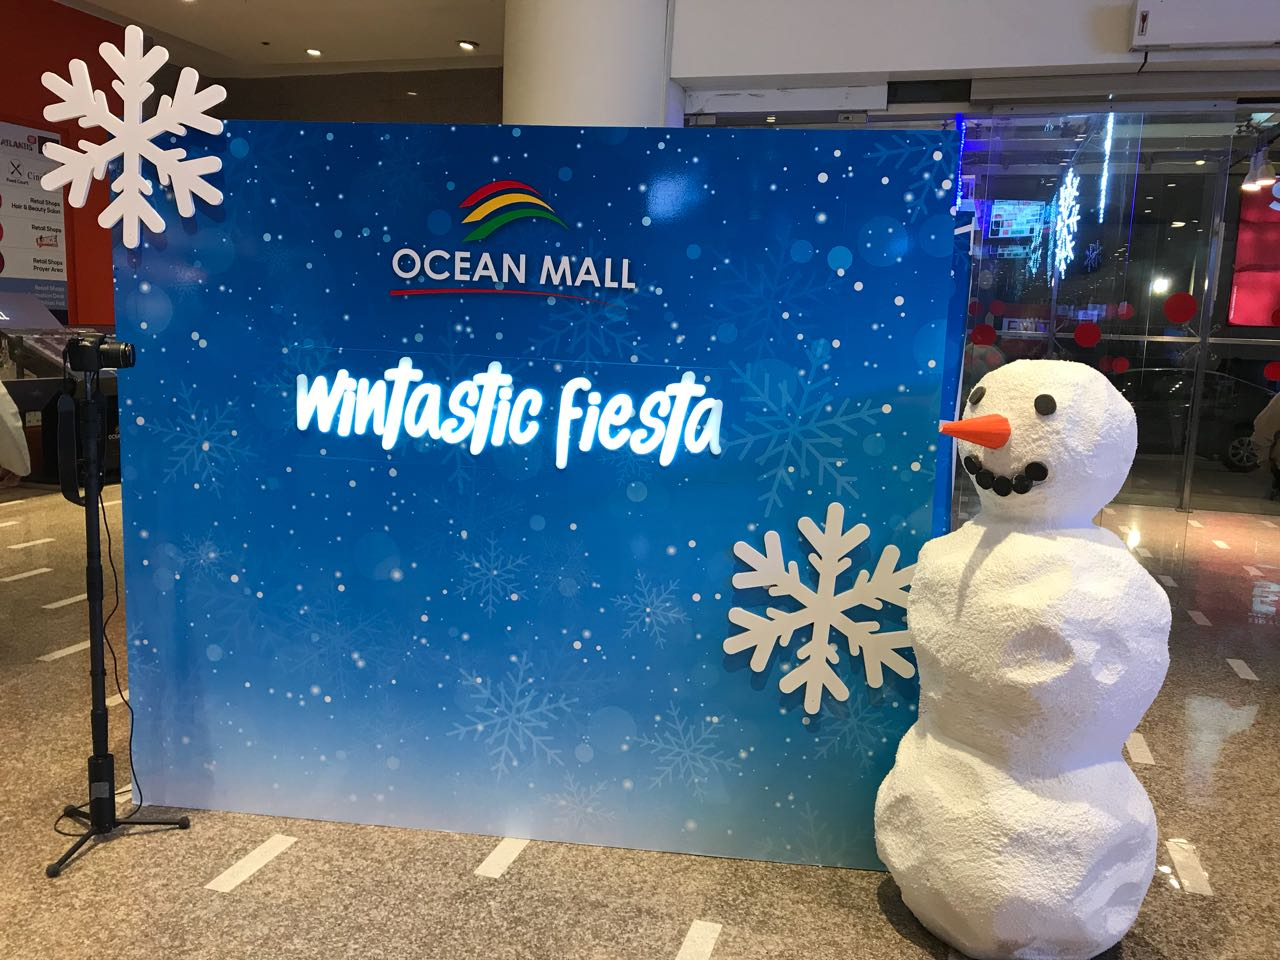 71f57b93bd The brand has raised the bar with its launch of the Winter Shopping Festival  and it seems like you can finally get your hands on all the cozy, chic  apparel ...